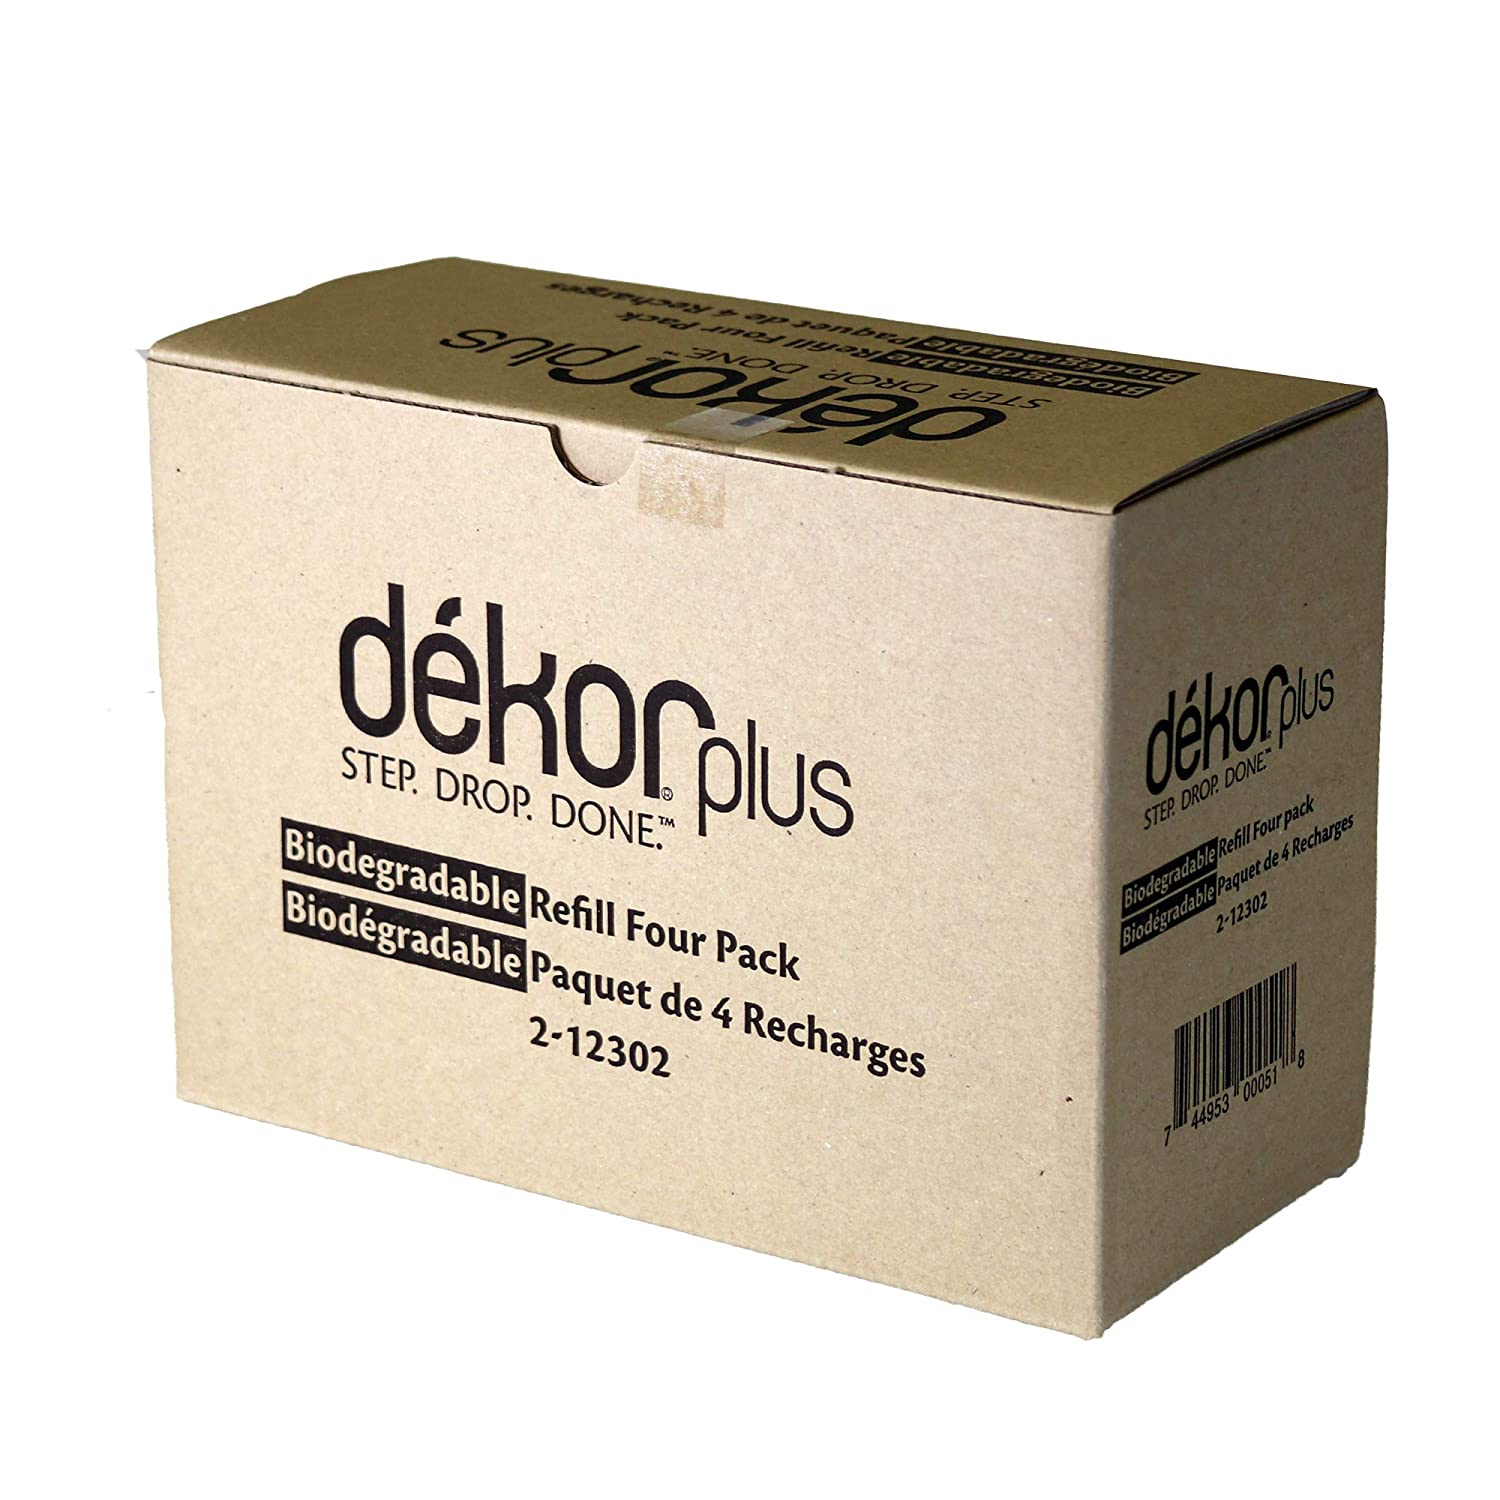 Dekor Plus Diaper Pail Biodegradable Refills | Most Economical Refill System | Quick and Simple to Replace | No Preset Bag Size – Use Only What You Need | Exclusive End-of-Liner Marking | 4 Count Regal Lager 2-12302